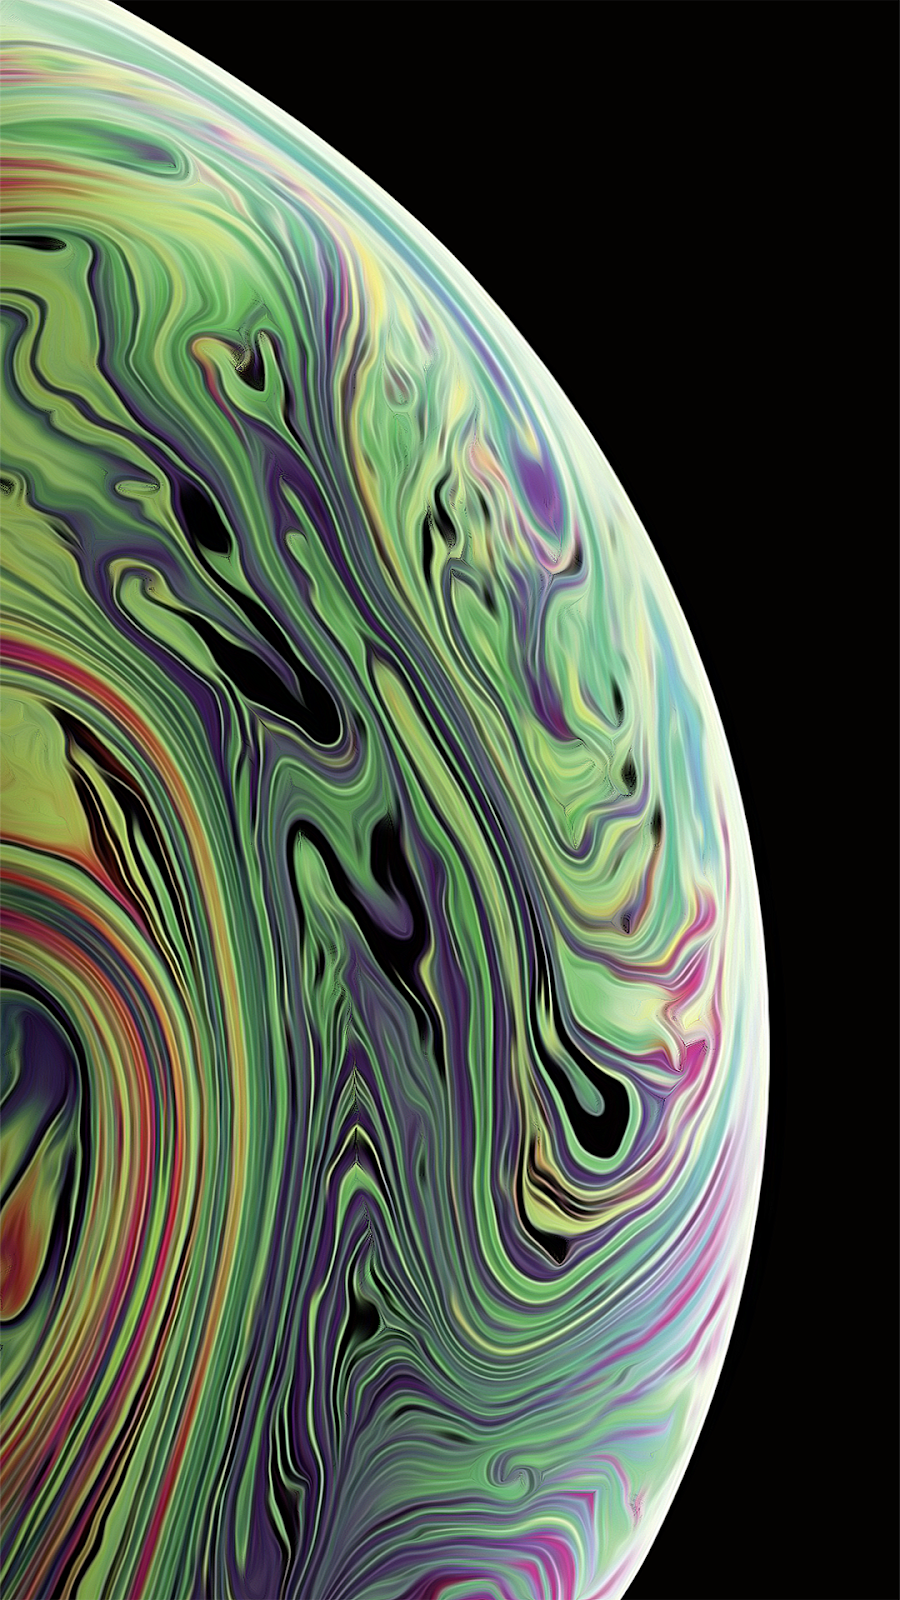 iPhone XS and XS Max Wallpapers in High Quality for Download